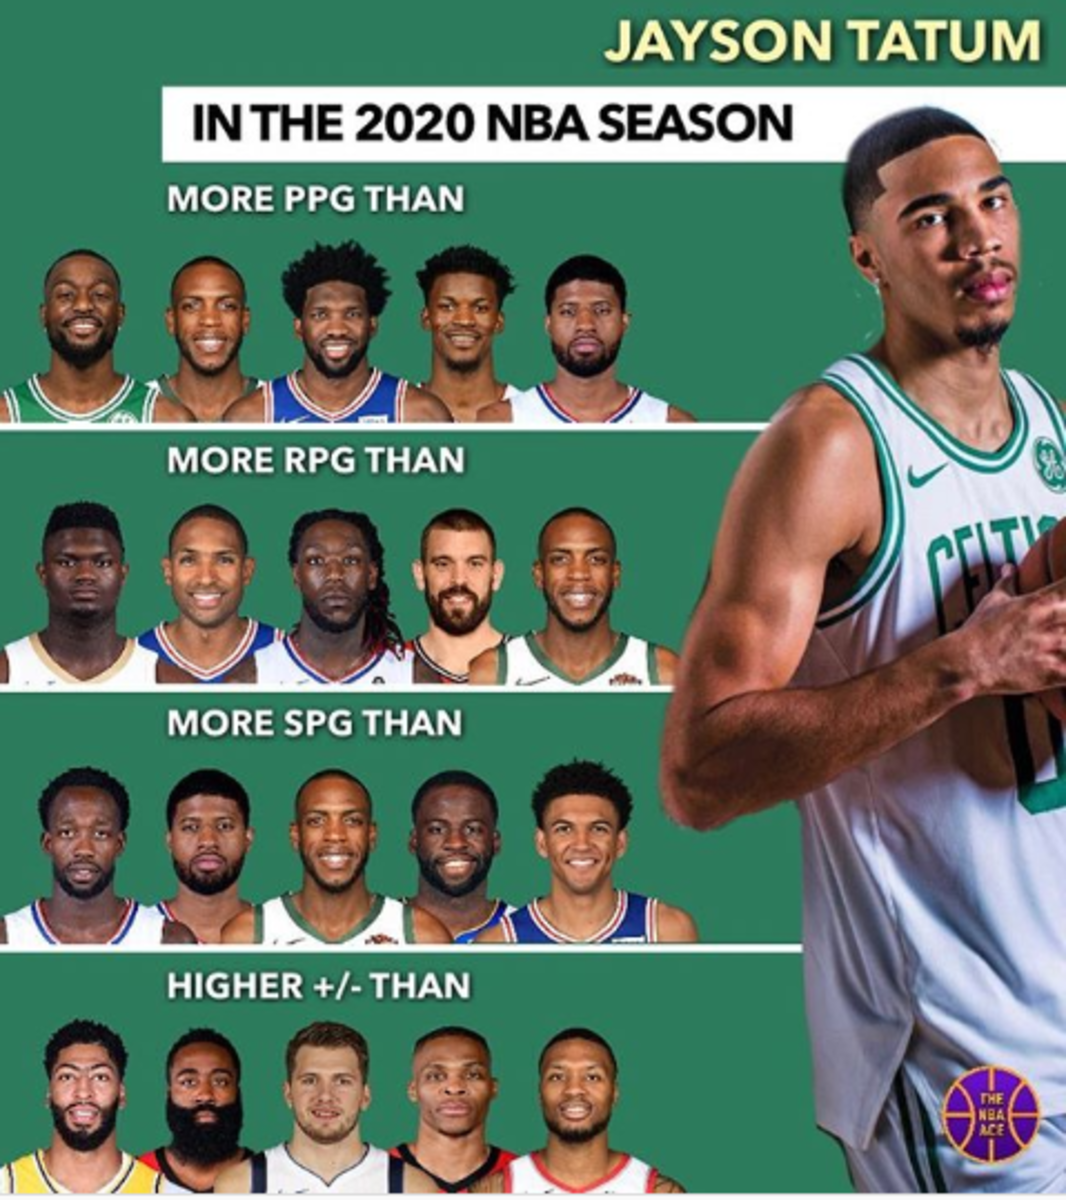 Credit: The NBA Ace